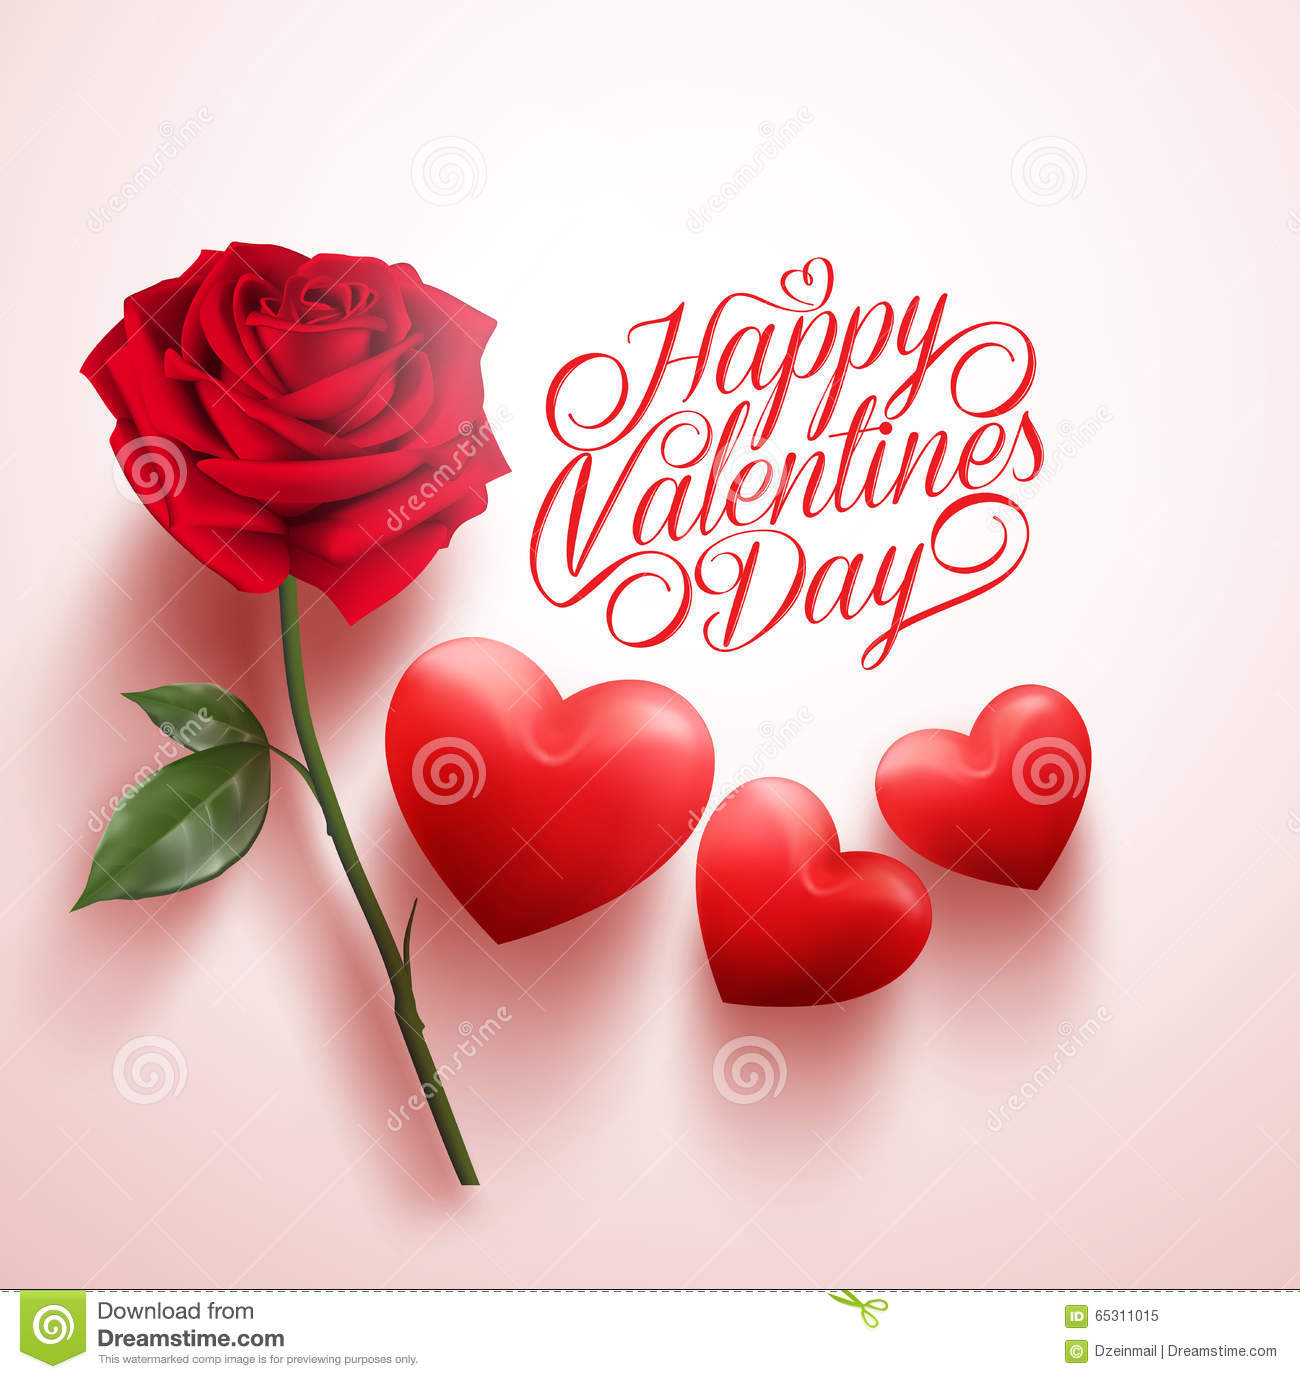 Red Rose and Hearts with Happy Valentines Day Message